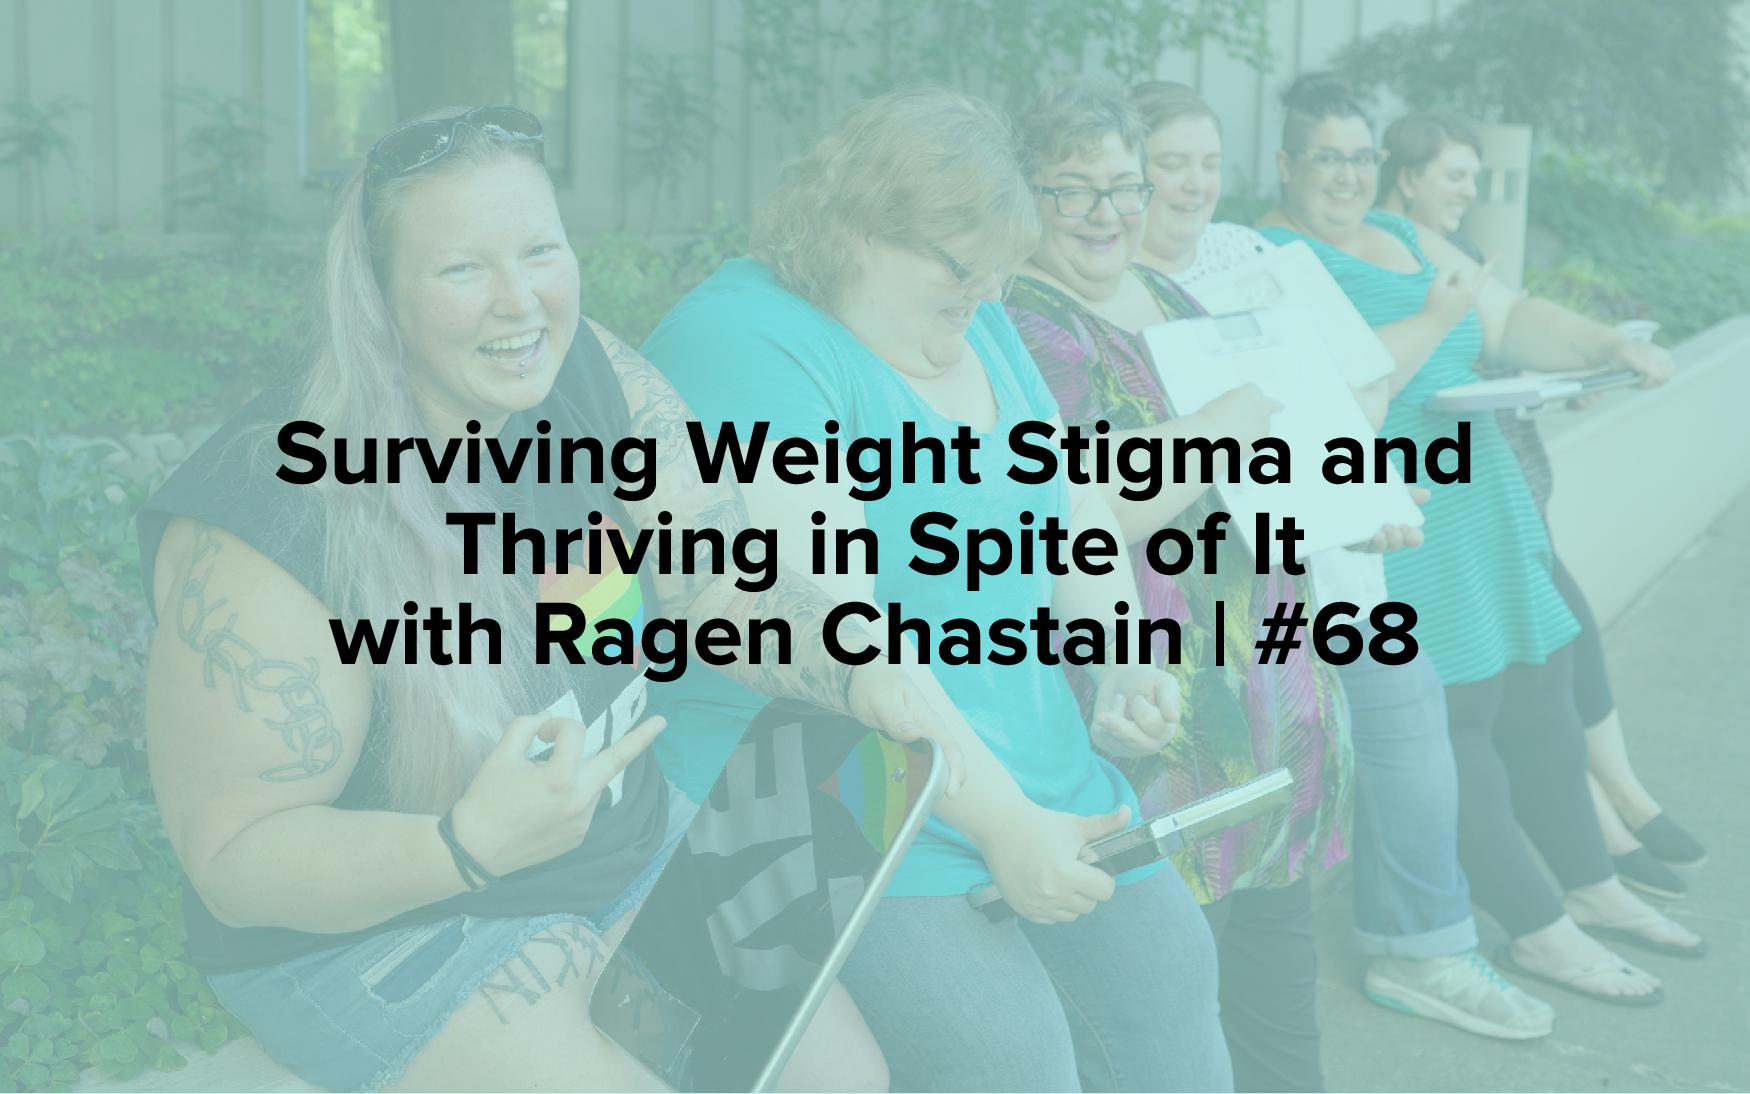 Surviving Weight Stigma and Thriving in Spite of It with Ragen Chastain | #68